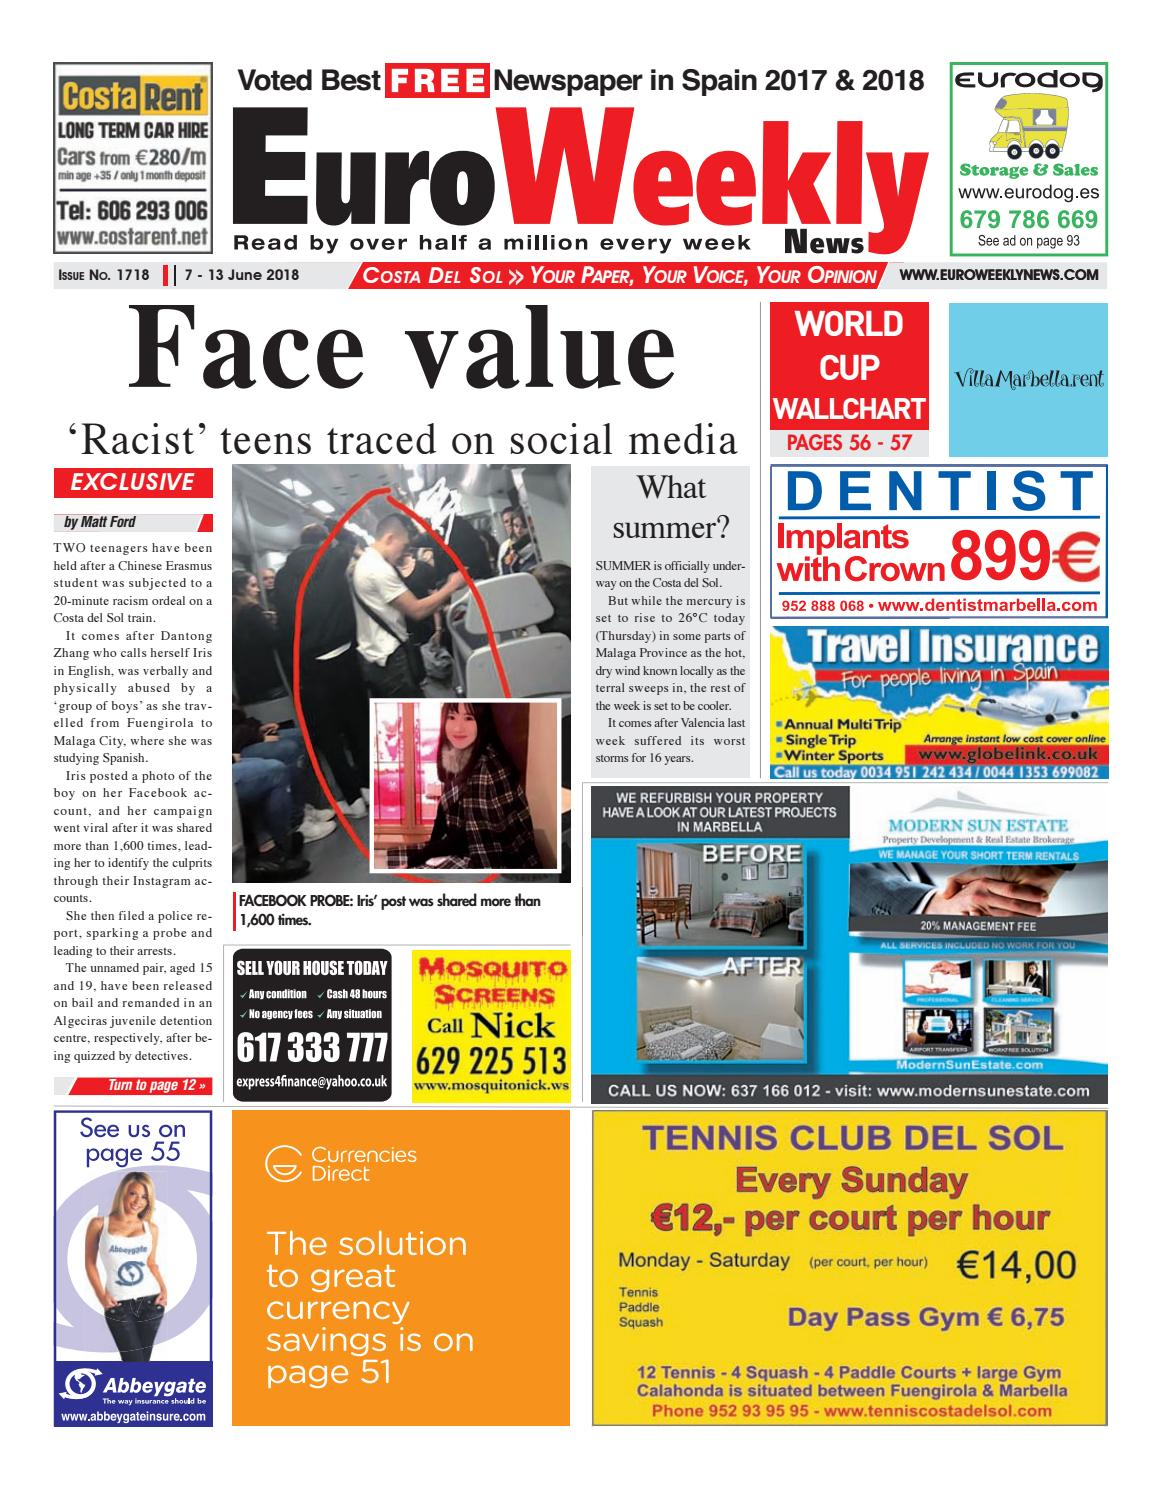 6a7272dcea38 Euro Weekly News - Costa del Sol 7 - 13 June 2018 Issue 1718 by Euro Weekly  News Media S.A. - issuu